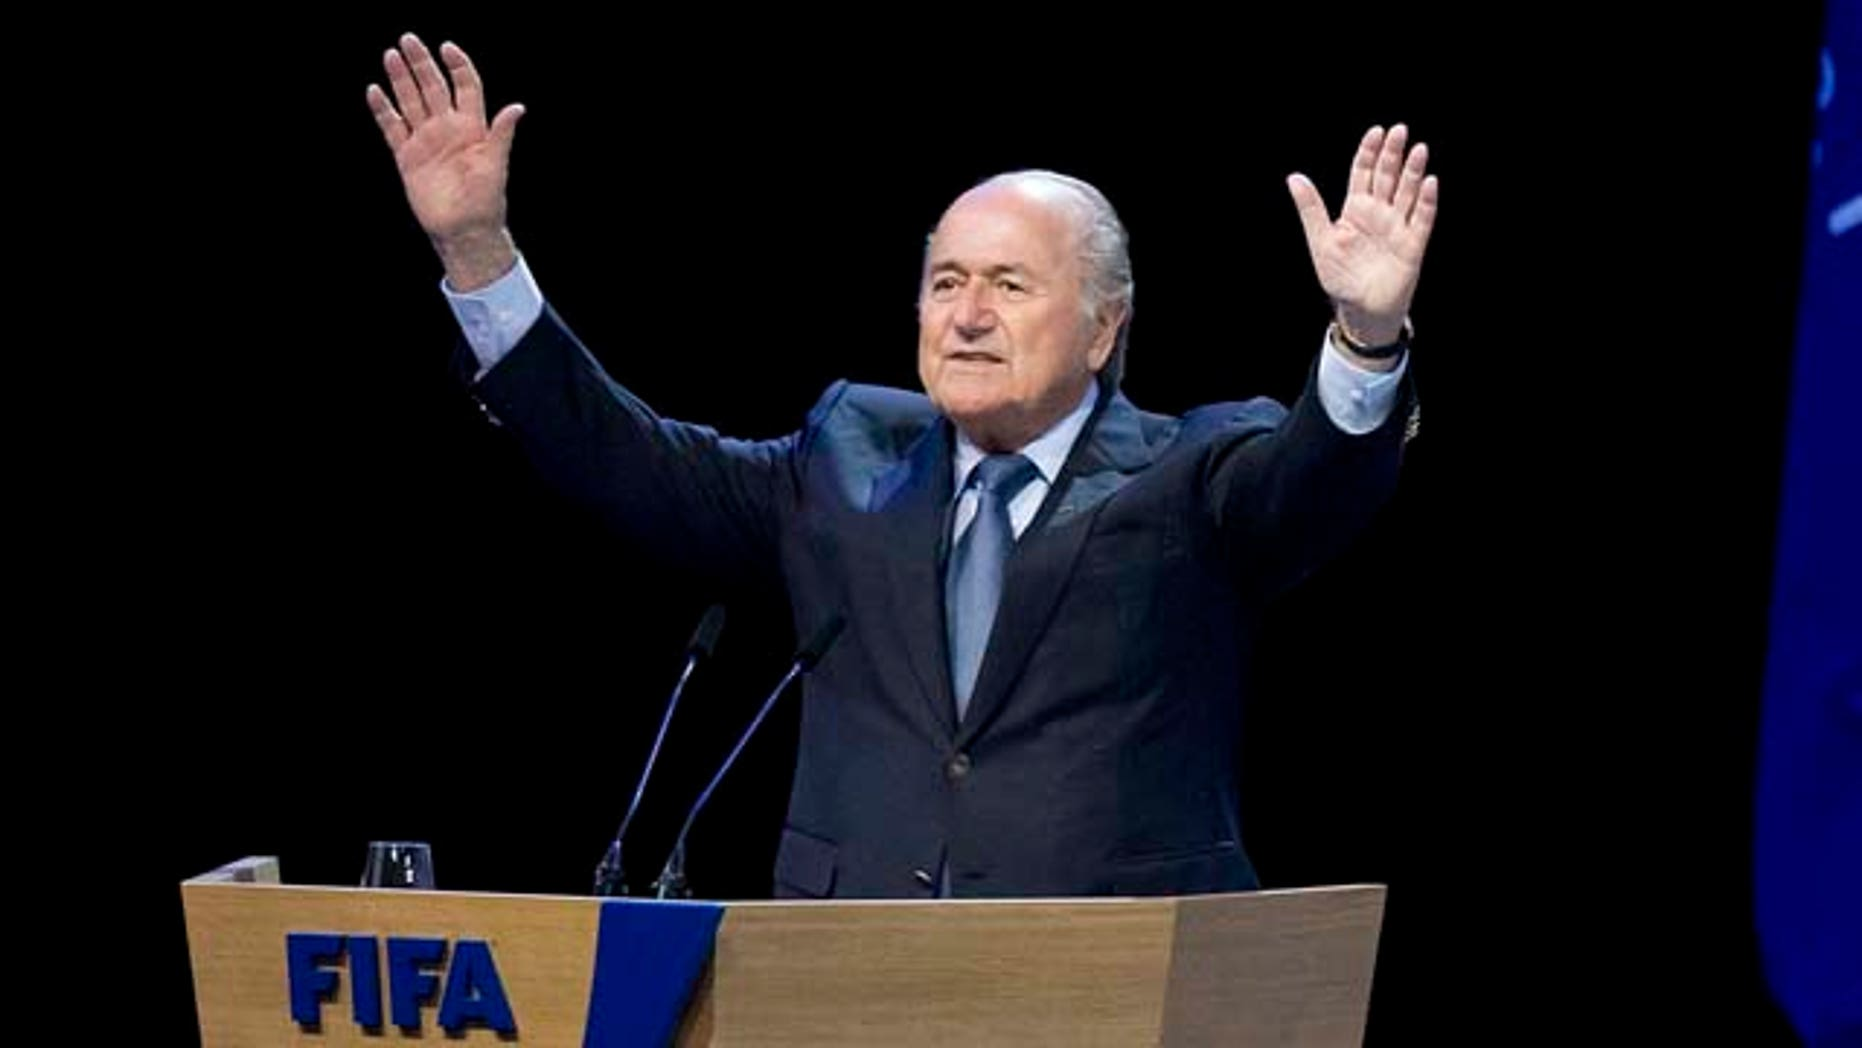 FIFA President Joseph Blatter reacts after he was re-elected FIFA president  in Zurich, Switzerland, Wednesday, June 1, 2011. Blatter was re-elected  after a major bribery scandal left him as the only candidate to deal with a sport reeling from a wave of corruption allegations.  Blatter, a 75-year-old Swiss executive who has been in office since 1998, was handed a final four-year term as head of football's governing body in a vote at FIFA's congress. (AP Photo / Keystone, Alessandro Della Bella) GERMANY OUT - AUSTRIA OUT